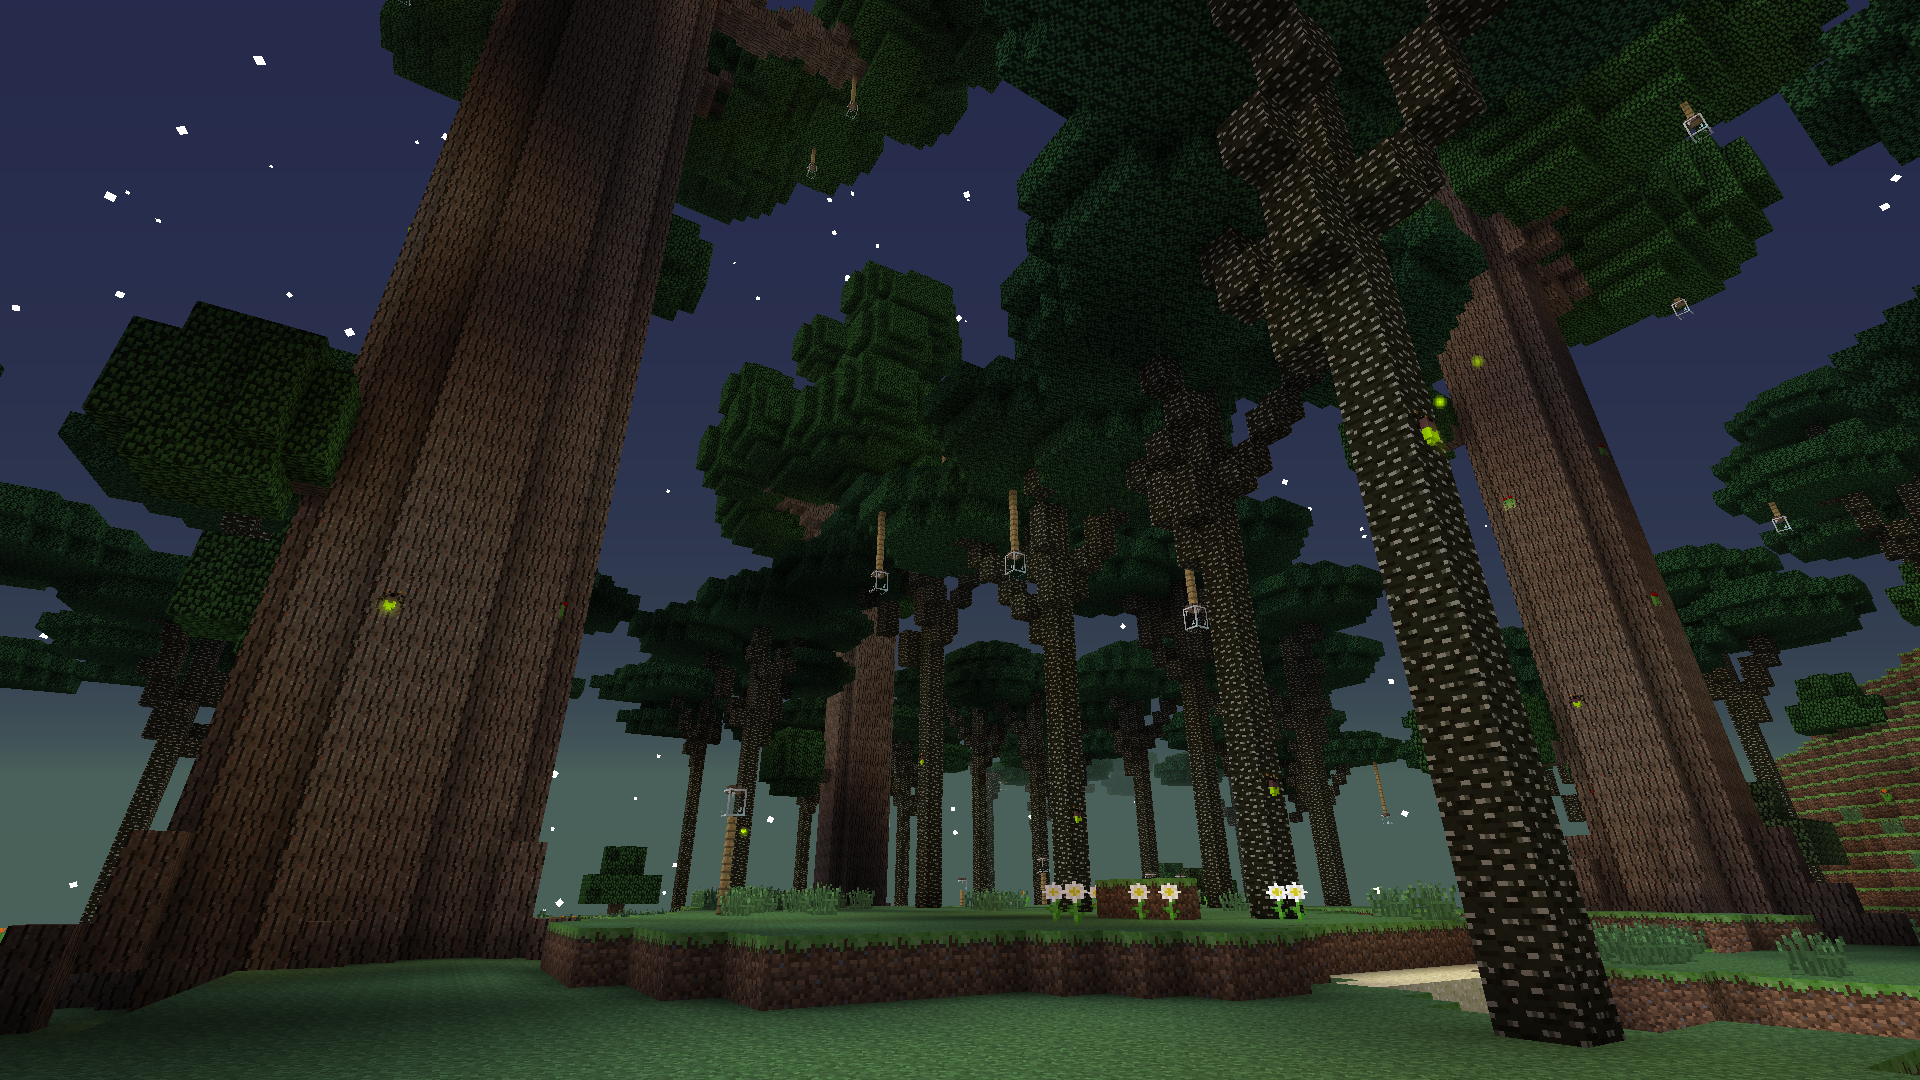 Must see Wallpaper Minecraft Forest - 2017-11-11_12  HD_801392.png